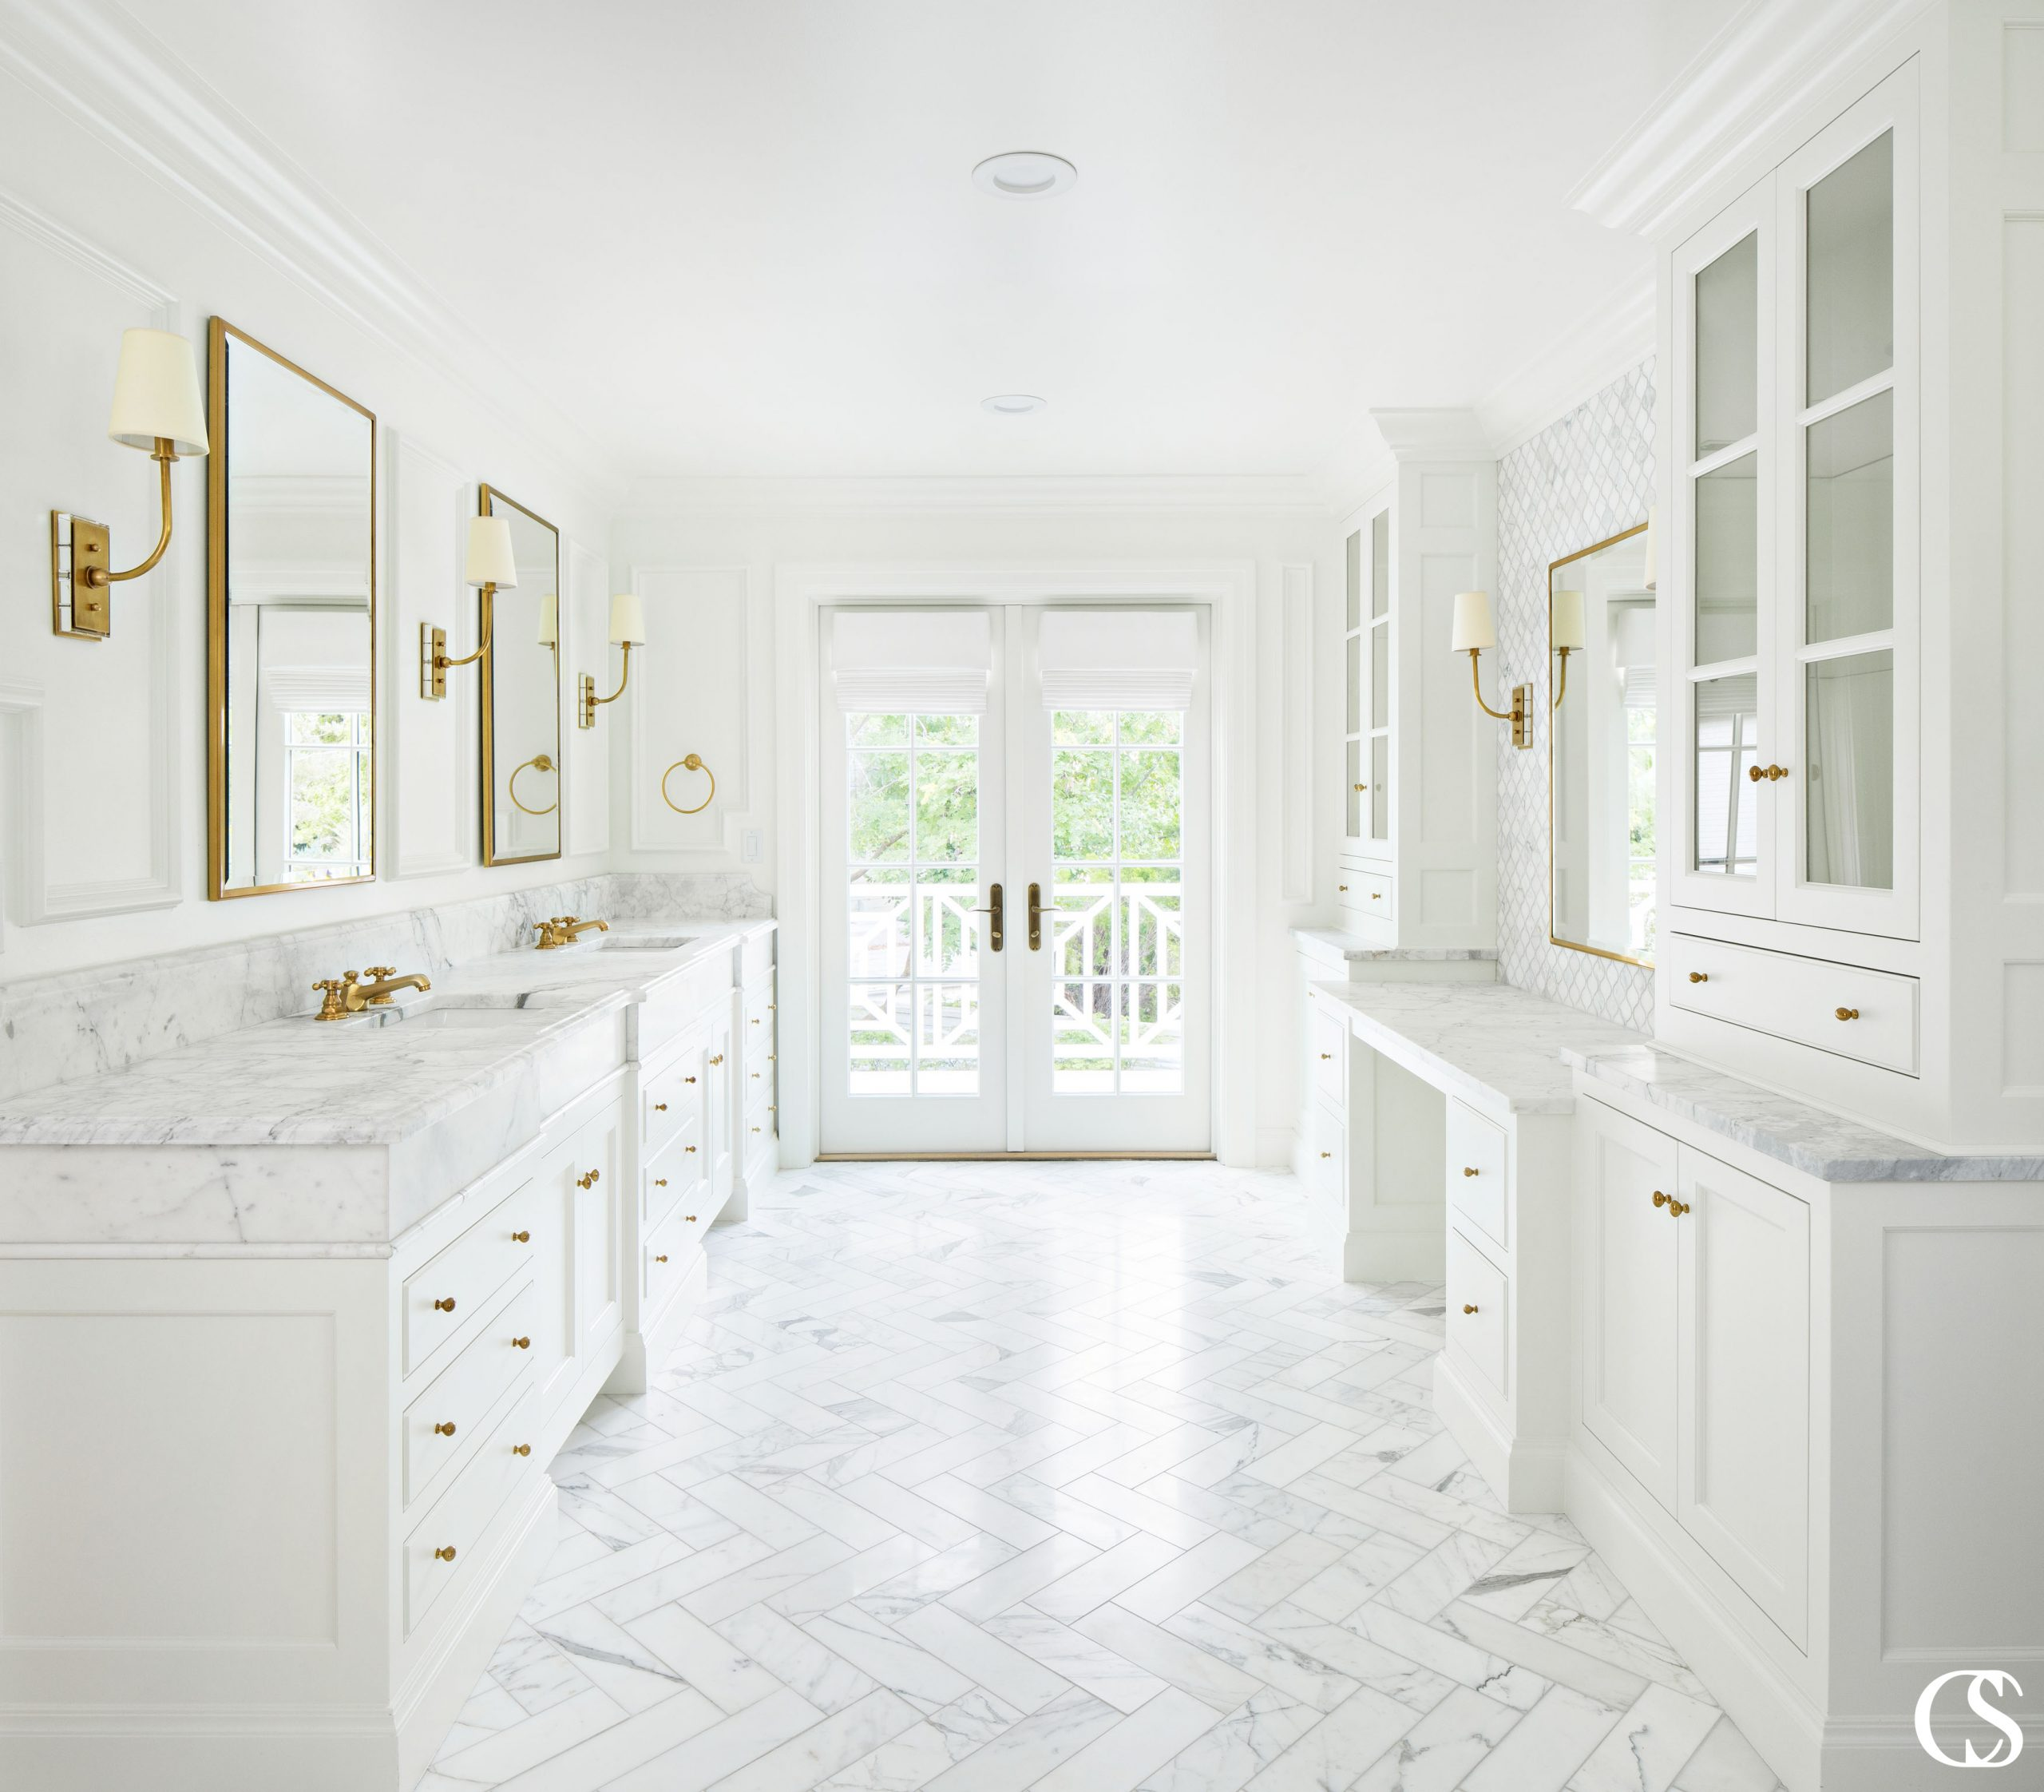 A common misconception with custom bathroom cabinets is that a vanity is all one cabinet, when in most cases, especially when two sinks are being incorporated, it's a combination of cabinets. The main reason for this is that you may need to fill a width greater than what a single cabinet can fill. Other reasons may be that you need to have a sink cabinet centered on plumbing or want to work in a specific type of storage.